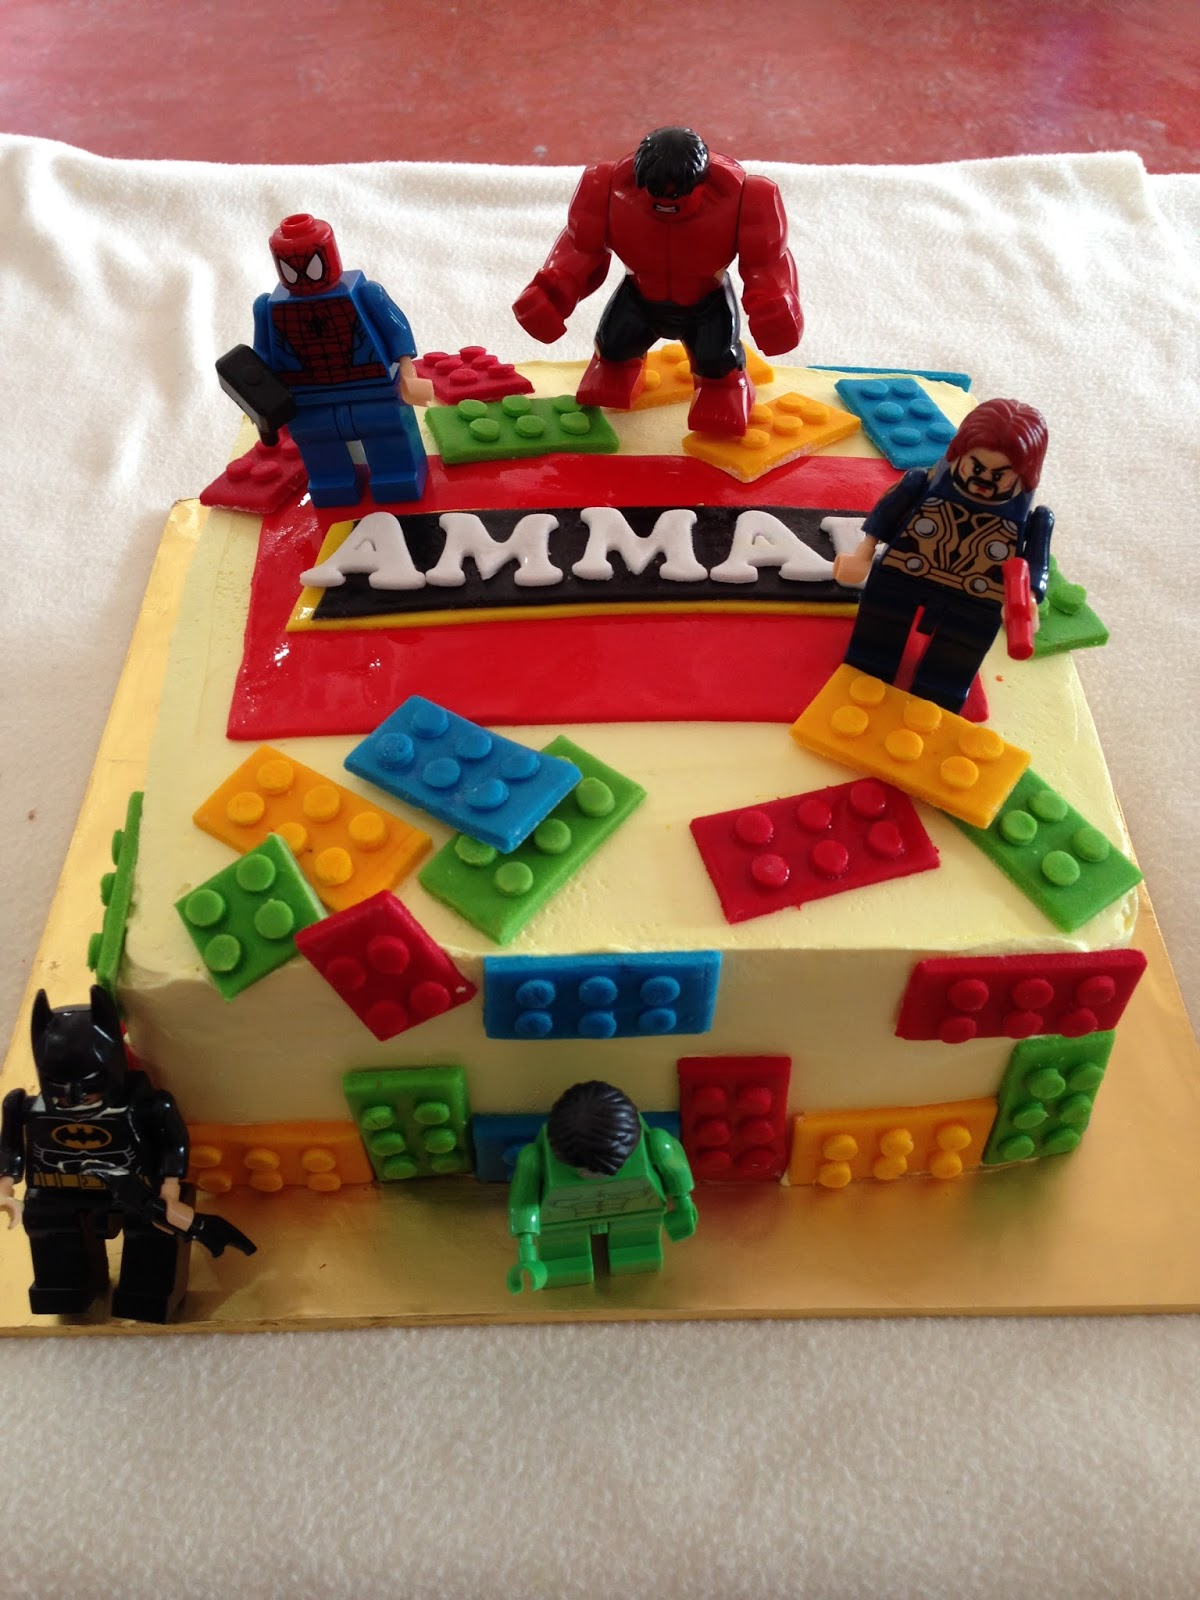 ninie cakes house: LEGO DESIGN CAKE WITH FIGURINE,FLAVOUR ...